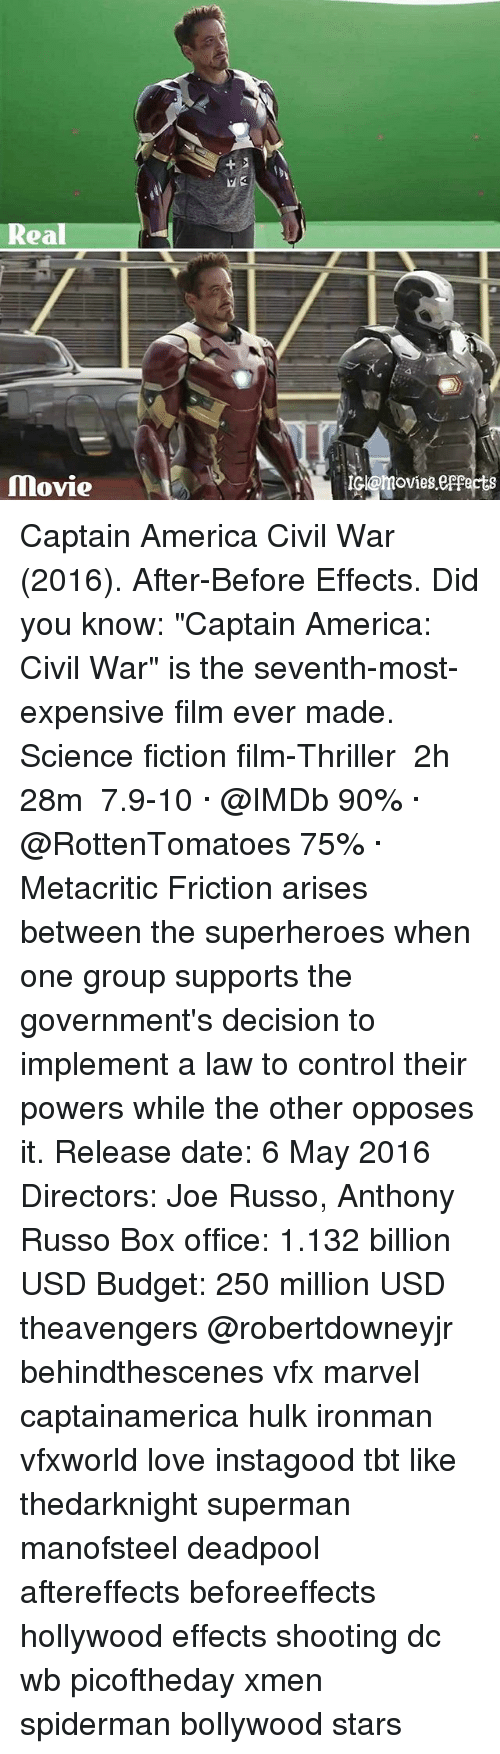 """xmen: Real  Movie  IGILomovies.esperis Captain America Civil War (2016). After-Before Effects. Did you know: """"Captain America: Civil War"""" is the seventh-most-expensive film ever made. Science fiction film-Thriller ‧ 2h 28m  7.9-10 · @IMDb 90% · @RottenTomatoes 75% · Metacritic Friction arises between the superheroes when one group supports the government's decision to implement a law to control their powers while the other opposes it. Release date: 6 May 2016 Directors: Joe Russo, Anthony Russo Box office: 1.132 billion USD Budget: 250 million USD theavengers @robertdowneyjr behindthescenes vfx marvel captainamerica hulk ironman vfxworld love instagood tbt like thedarknight superman manofsteel deadpool aftereffects beforeeffects hollywood effects shooting dc wb picoftheday xmen spiderman bollywood stars"""